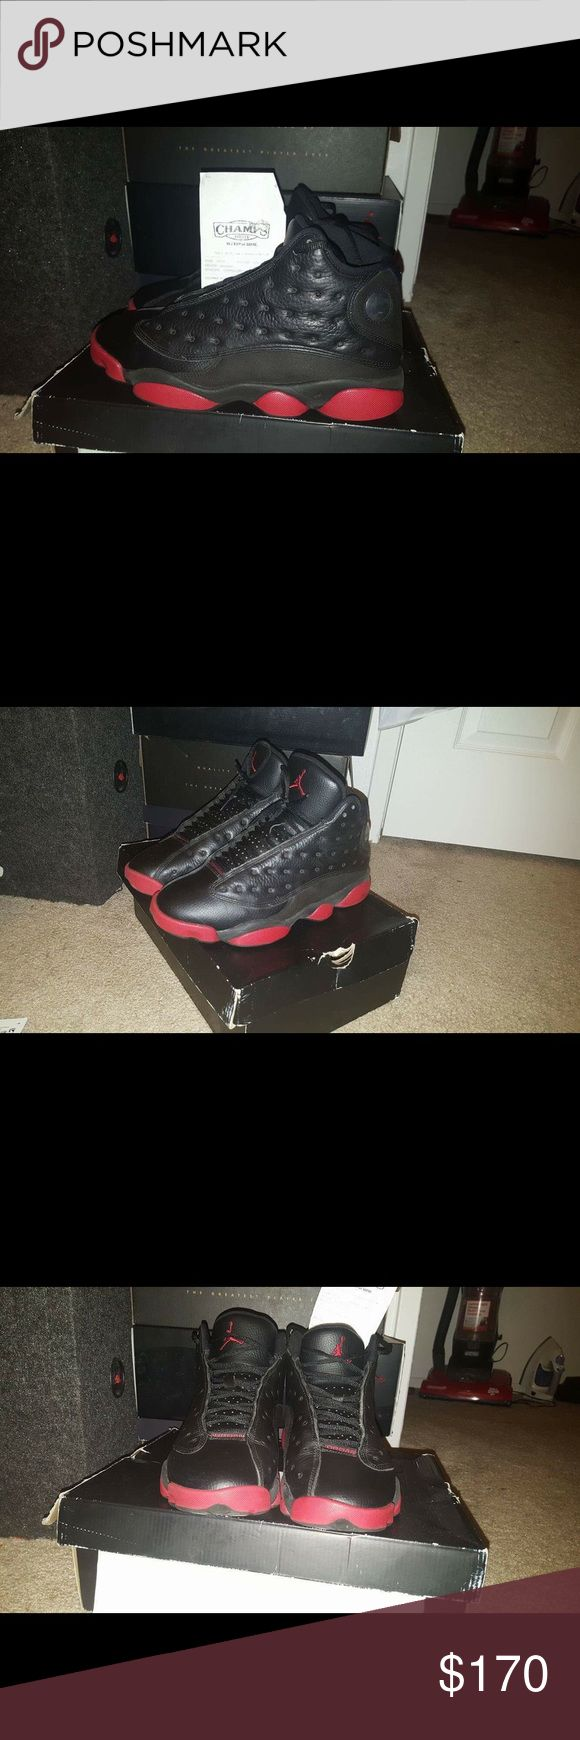 Retros dirty bred 13s Dirty bred 13s size 8!!! Condition 9/10 170.00 Obo Jordan Shoes Sneakers